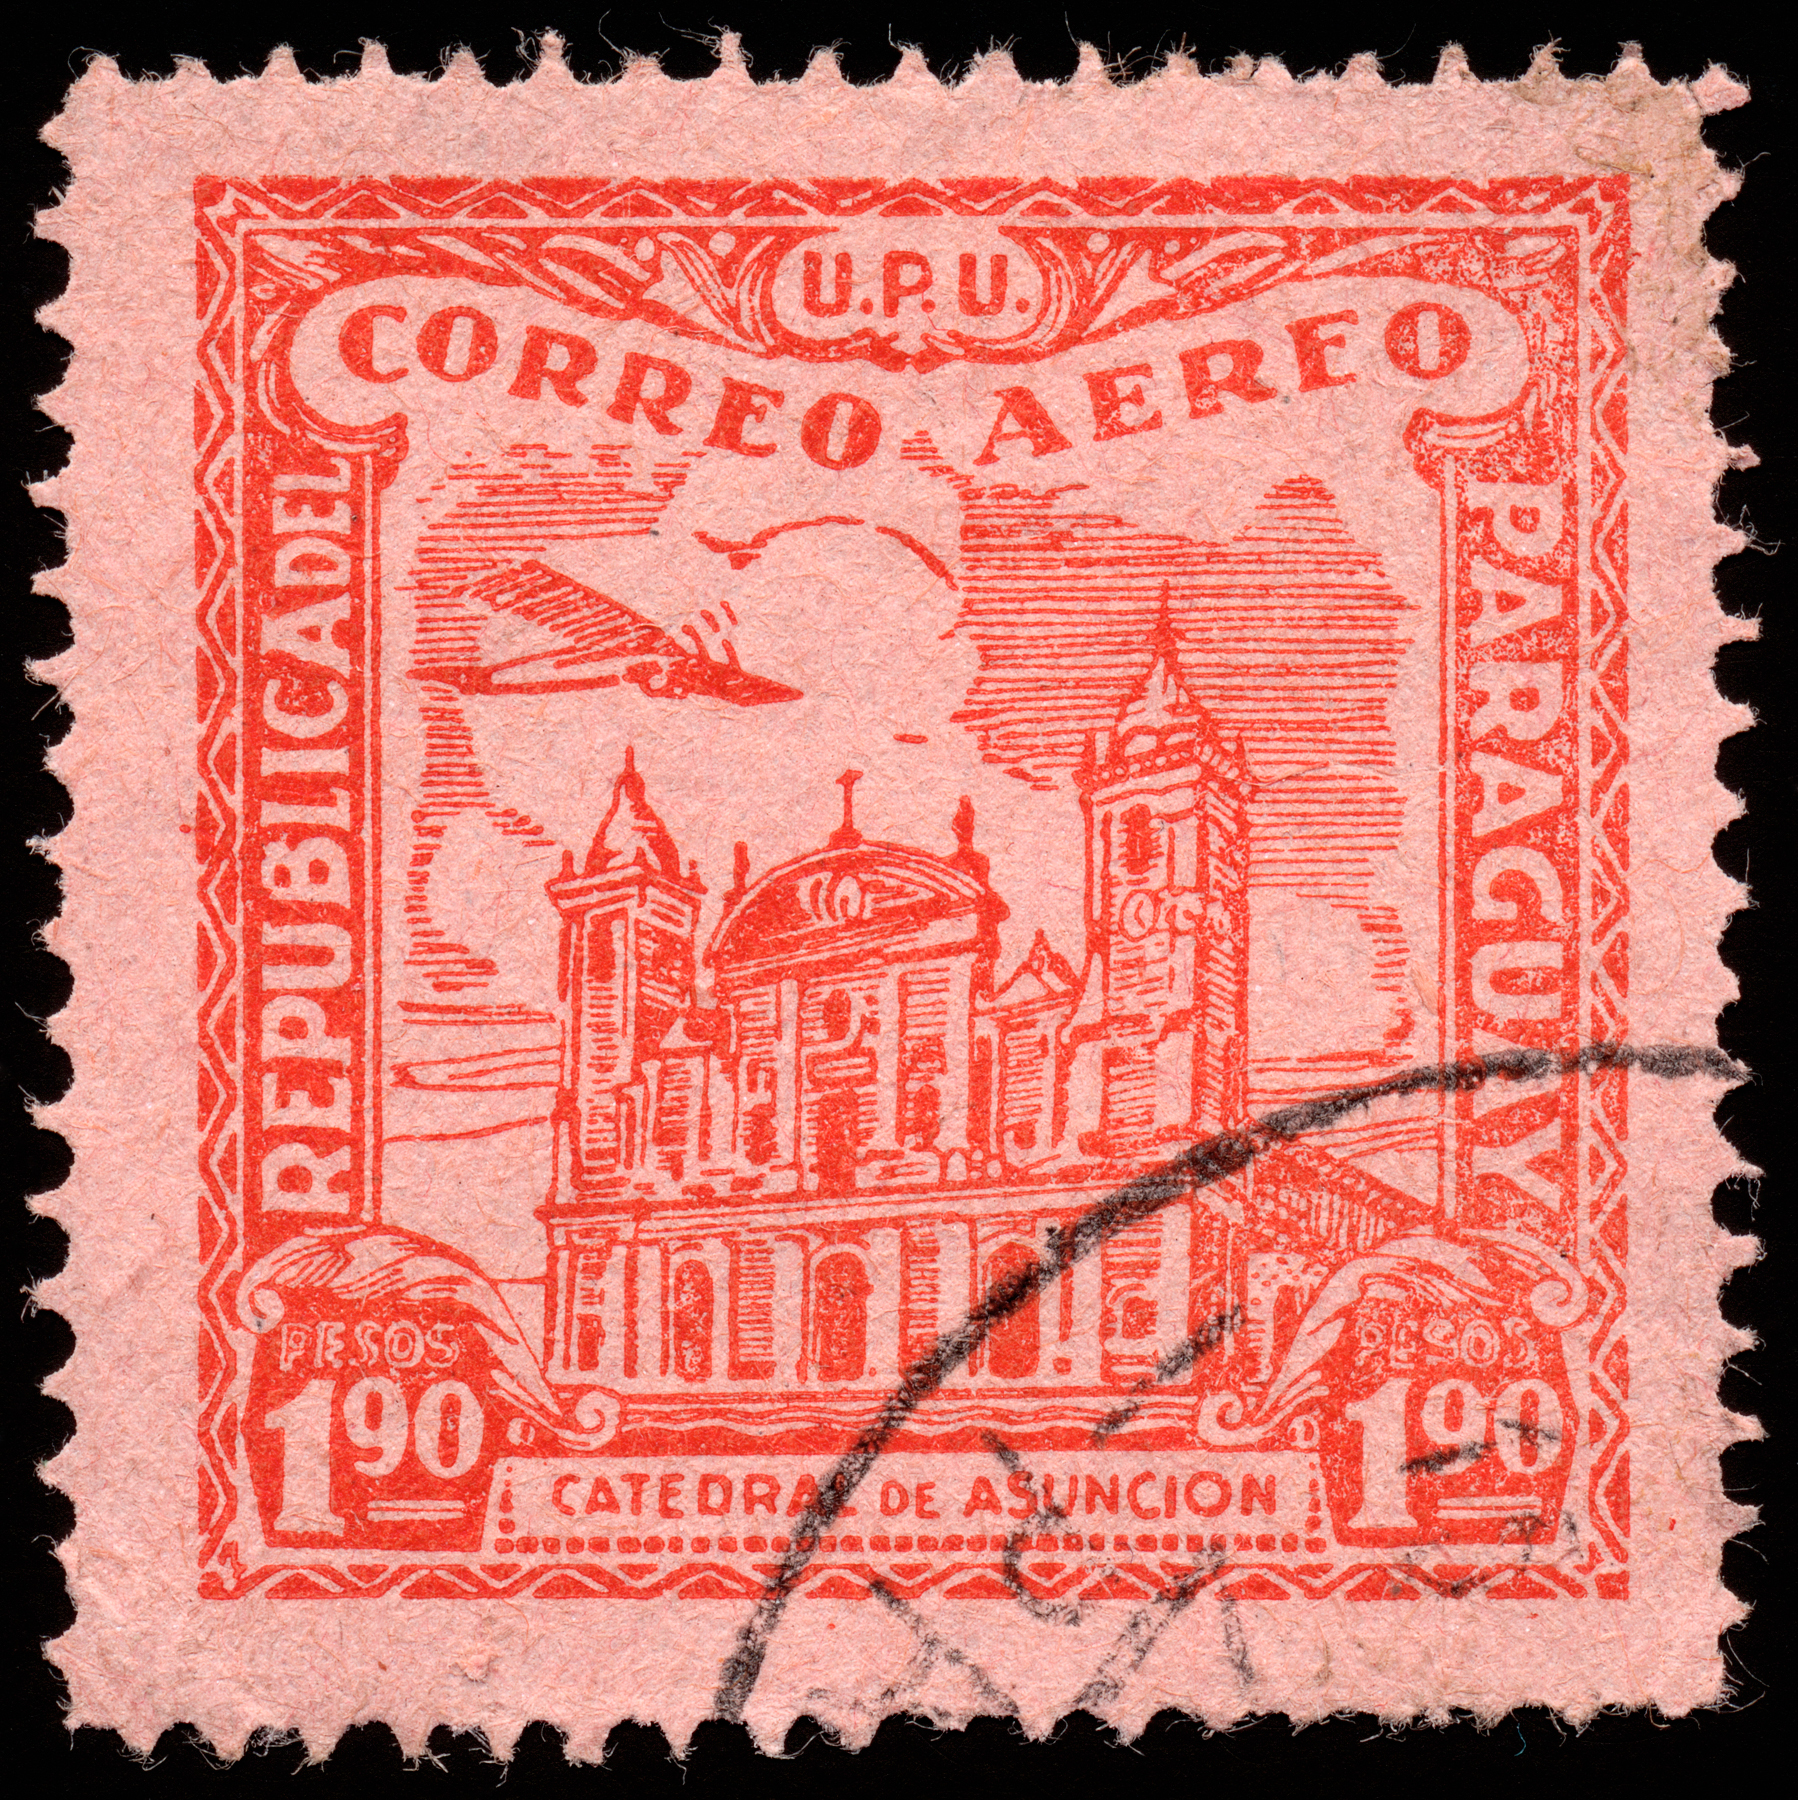 Red asuncion cathedral airmail stamp photo